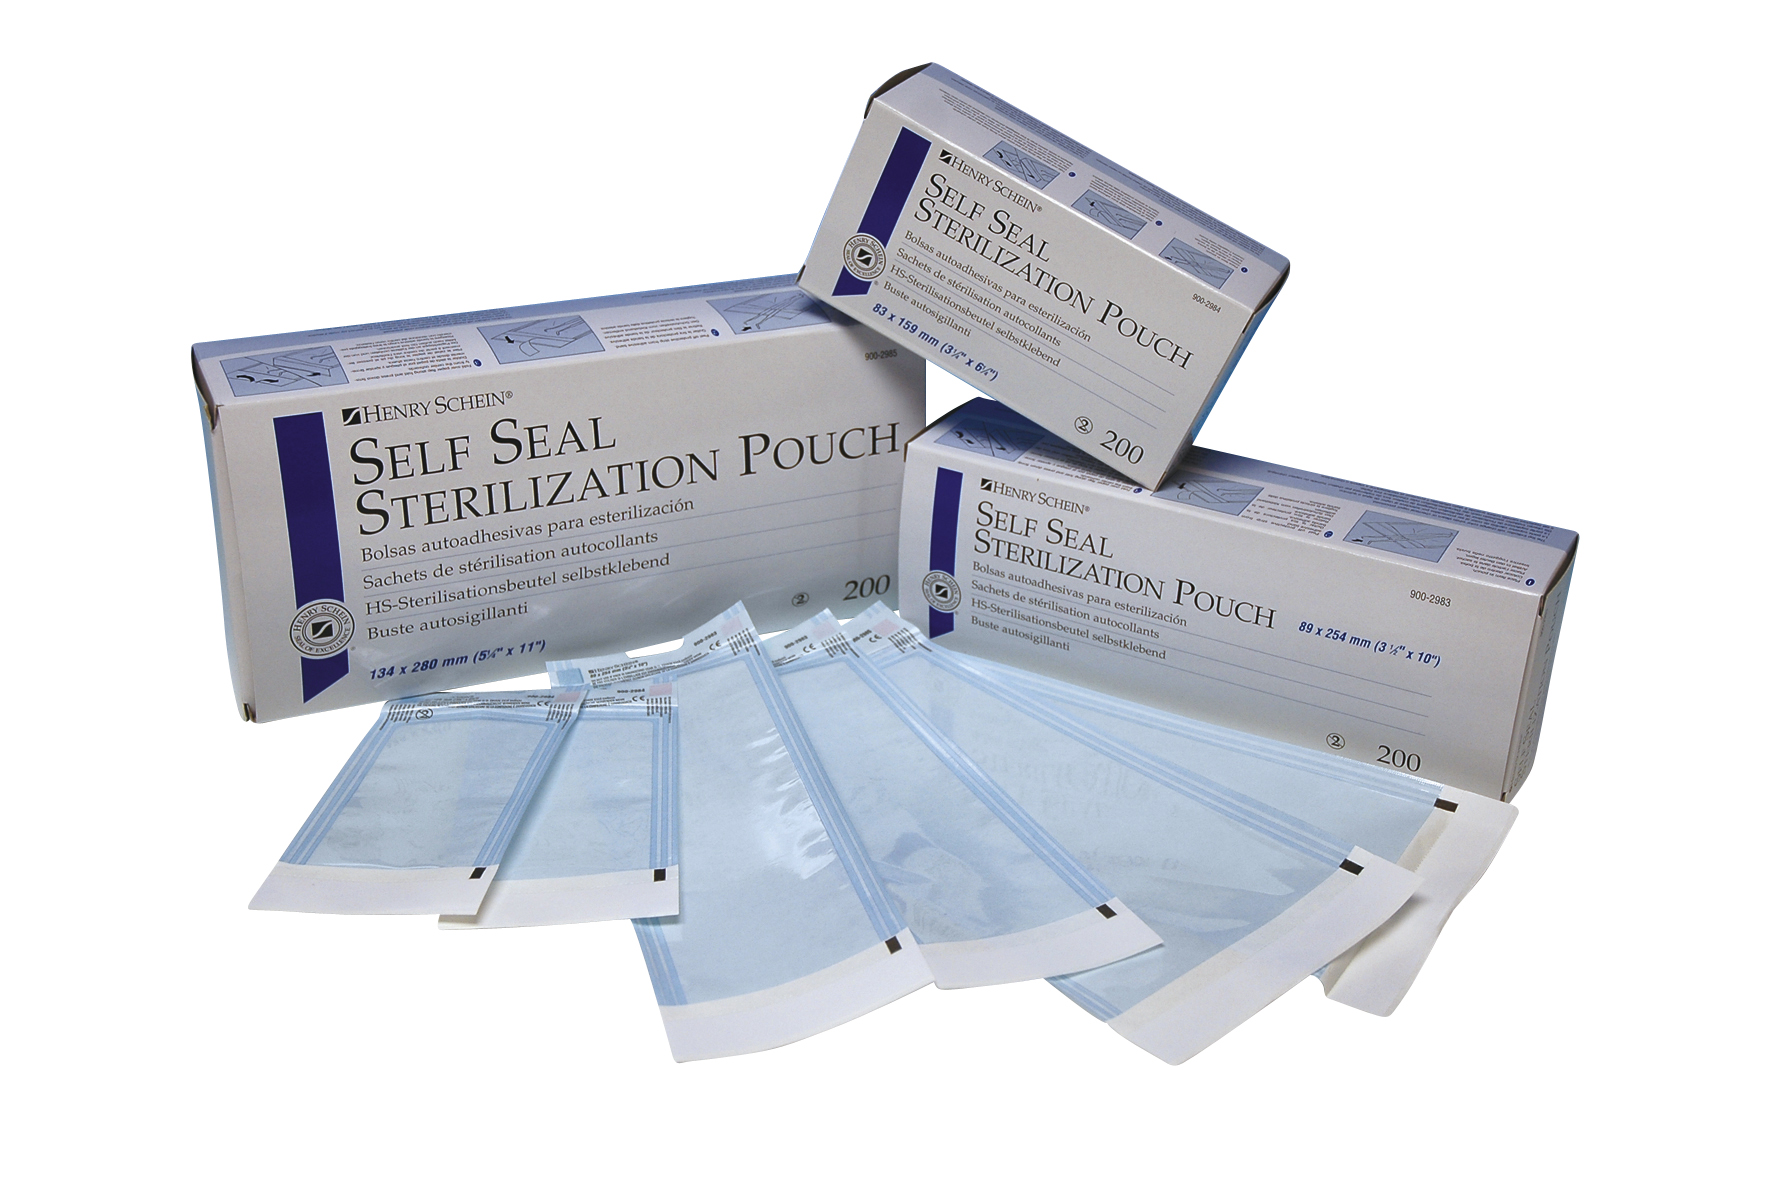 Henry Schein Autoklave Self-seal pouch, 89 x 254 mm, pk/200